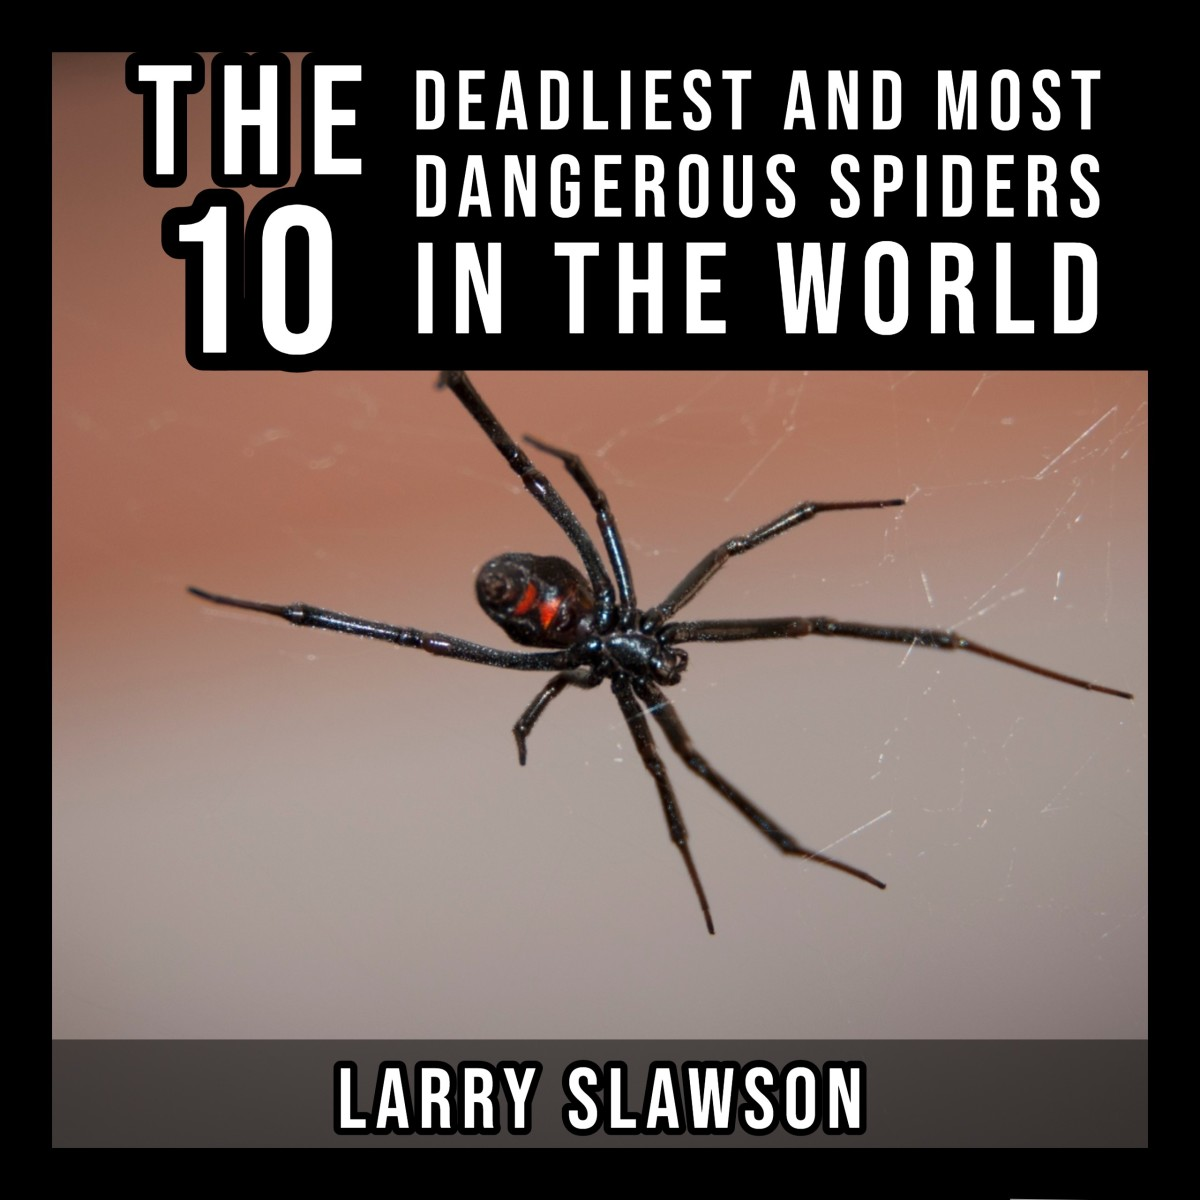 The top 10 deadliest spiders in the world.